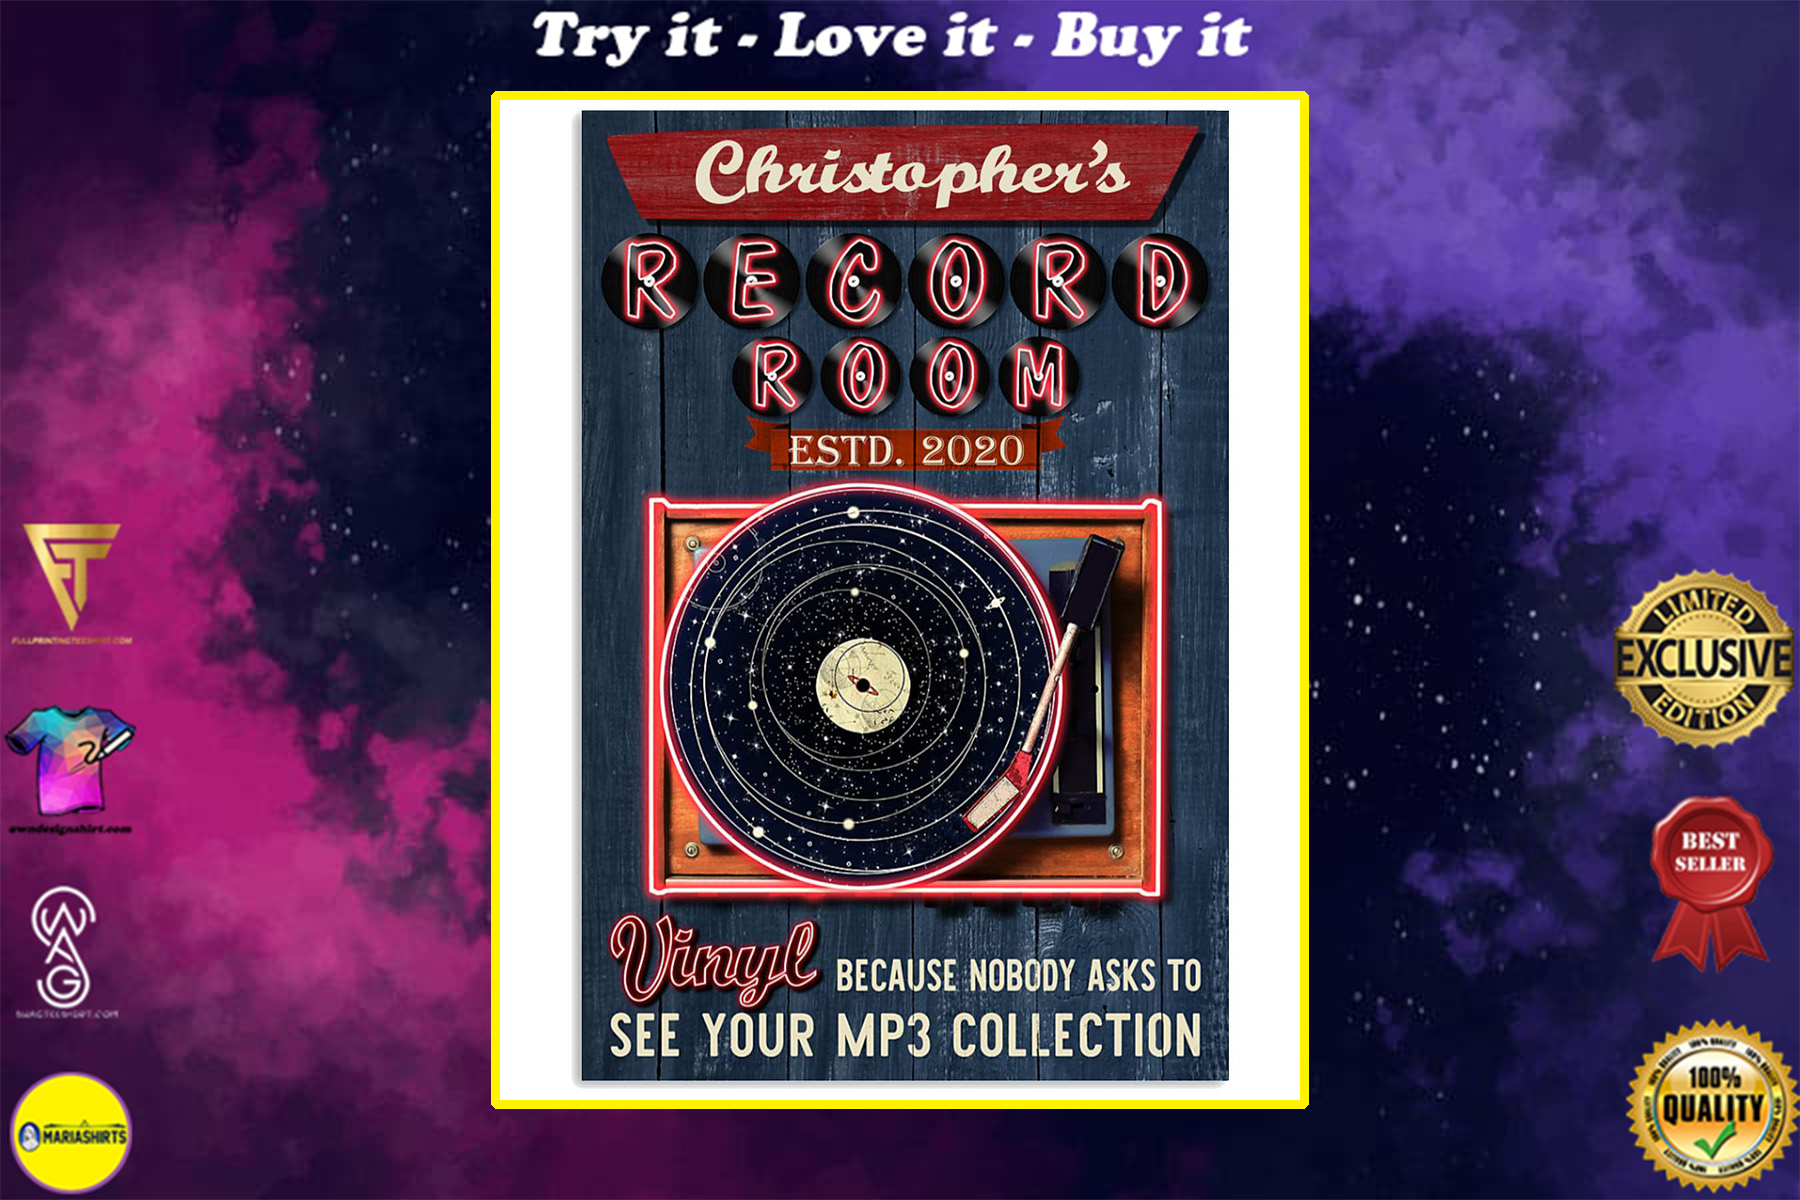 custom your name record room vinyl vintage poster